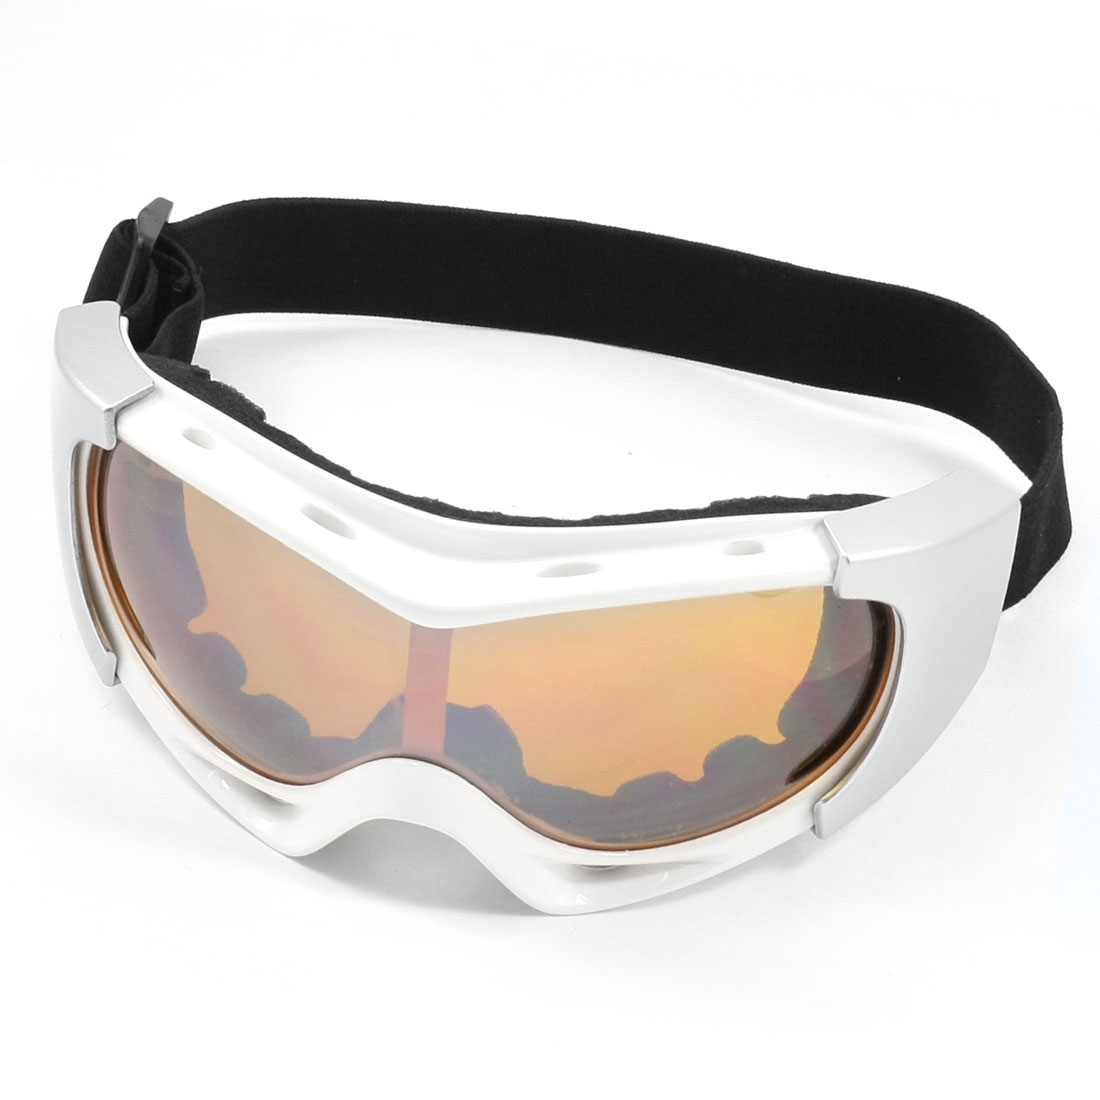 Unisex Yellow Lens Ski Snowboard Sports Goggles White